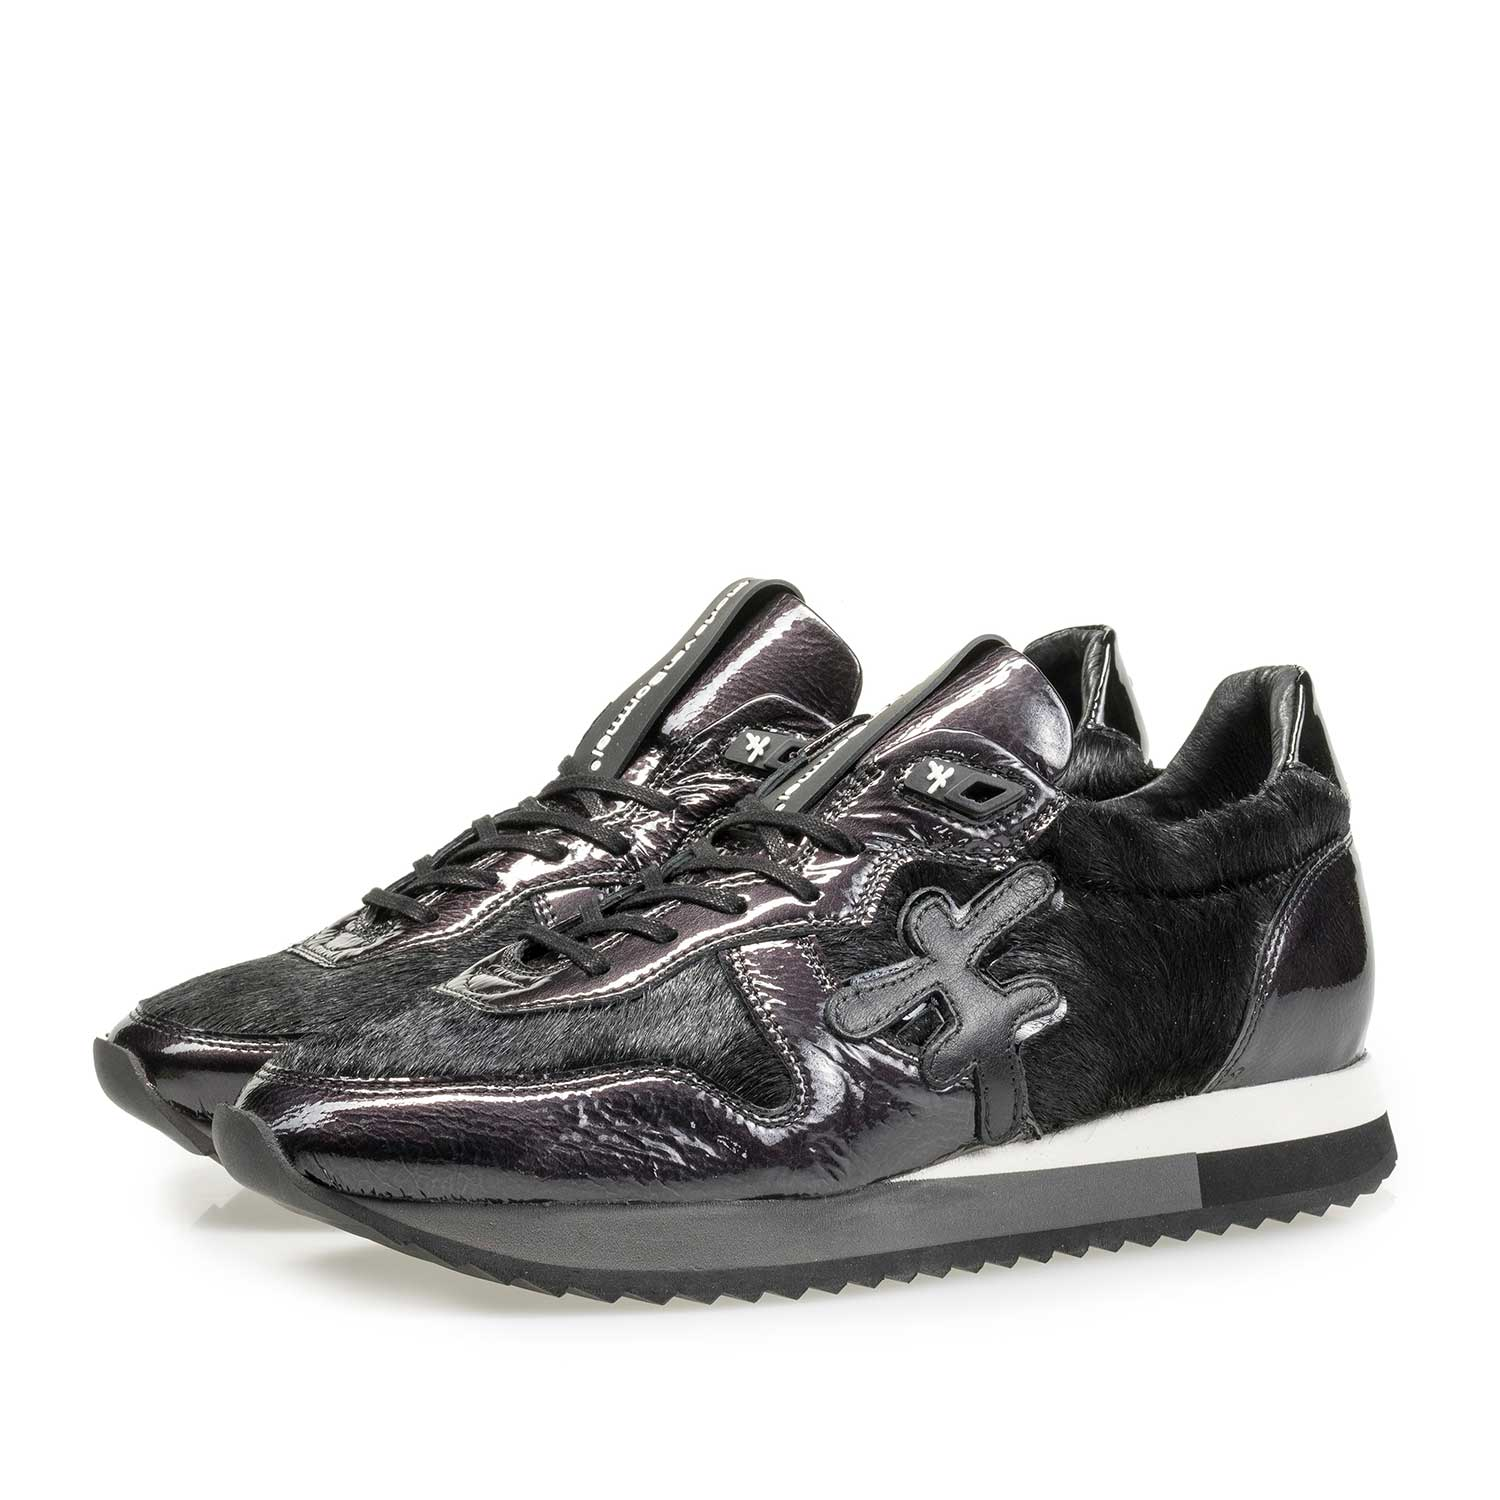 85256/03 - Black patent leather sneaker with F-logo